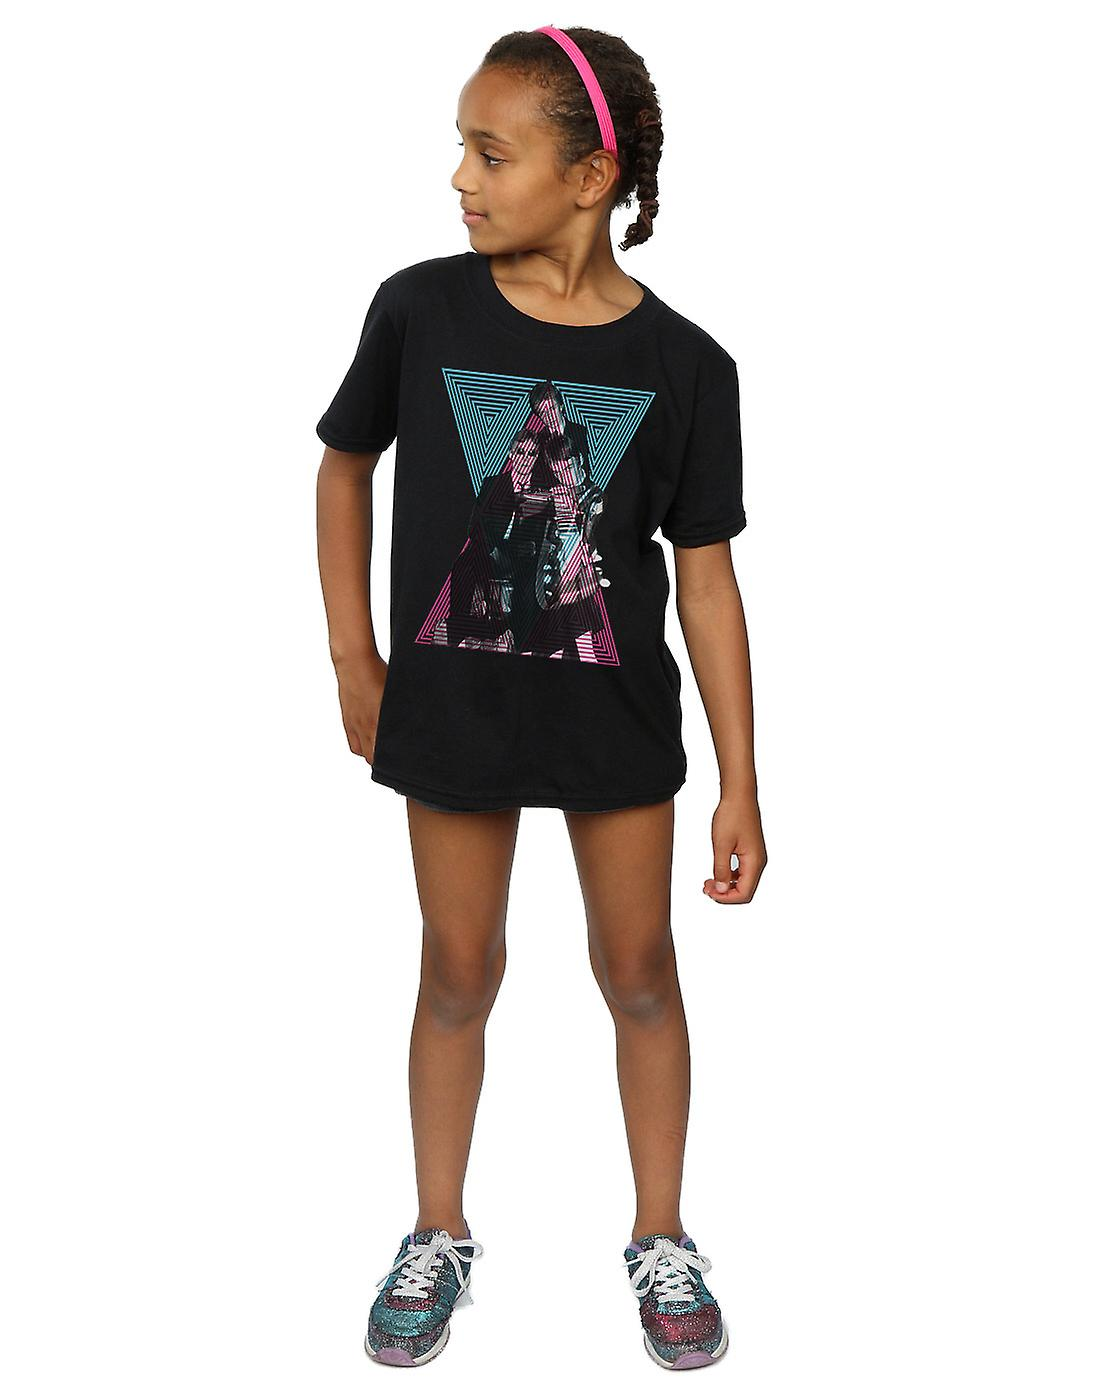 Paul Weller Girls Sights Photo T-Shirt